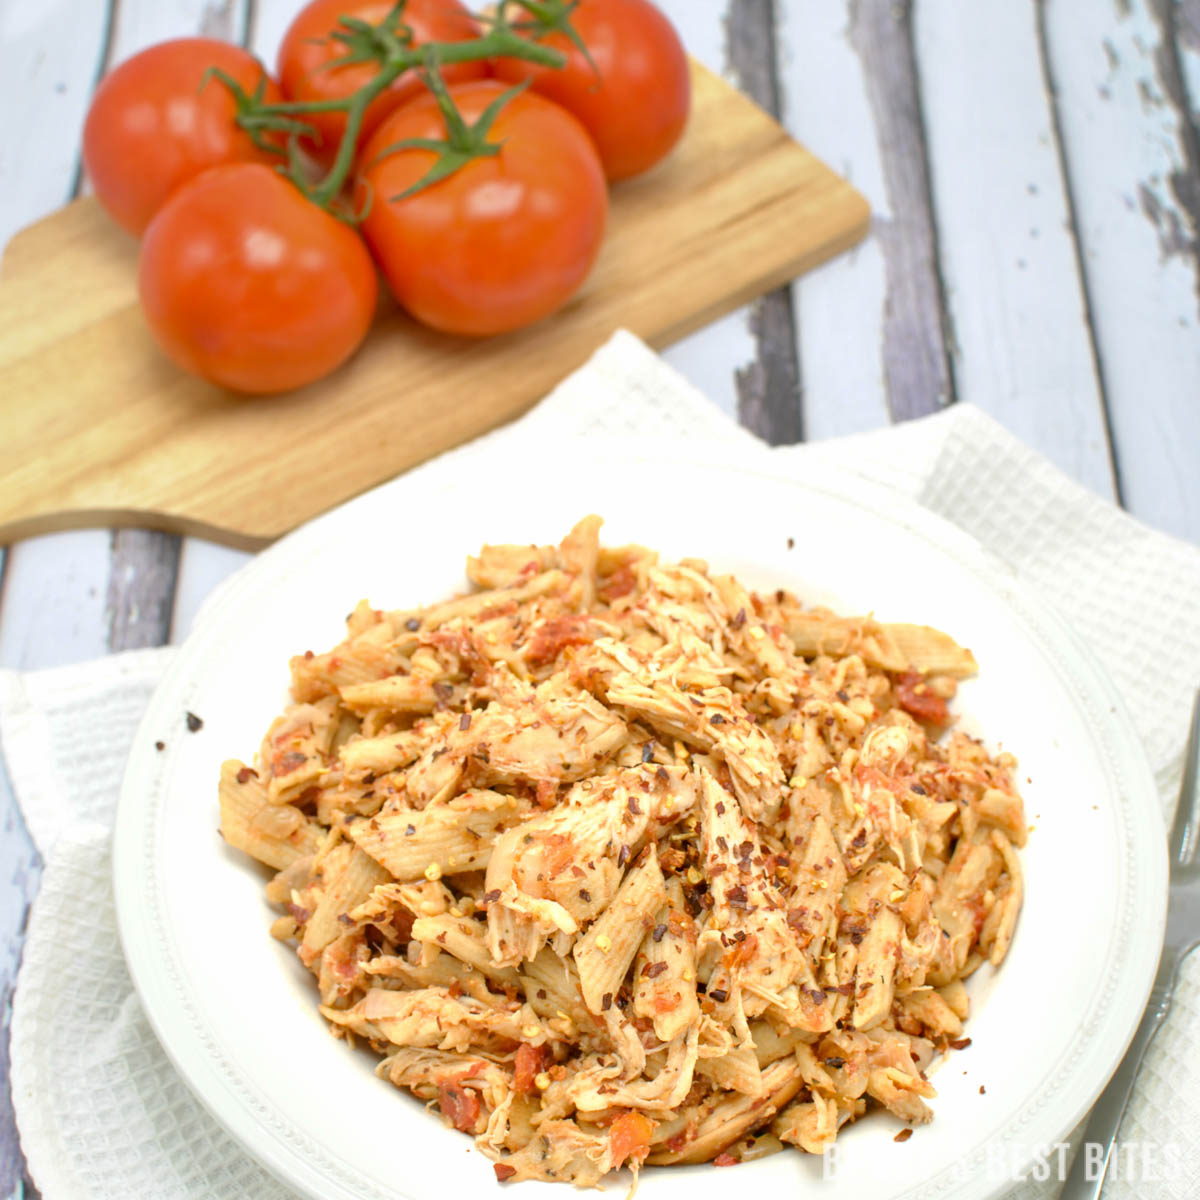 Slow Cooker Chicken Cacciatore is a one-pot easy and healthy weeknight dinner recipe. This version is a twist on the Italian classic with tomatoes, harissa, onion & garlic over whole wheat pasta | beckysbestbites.com